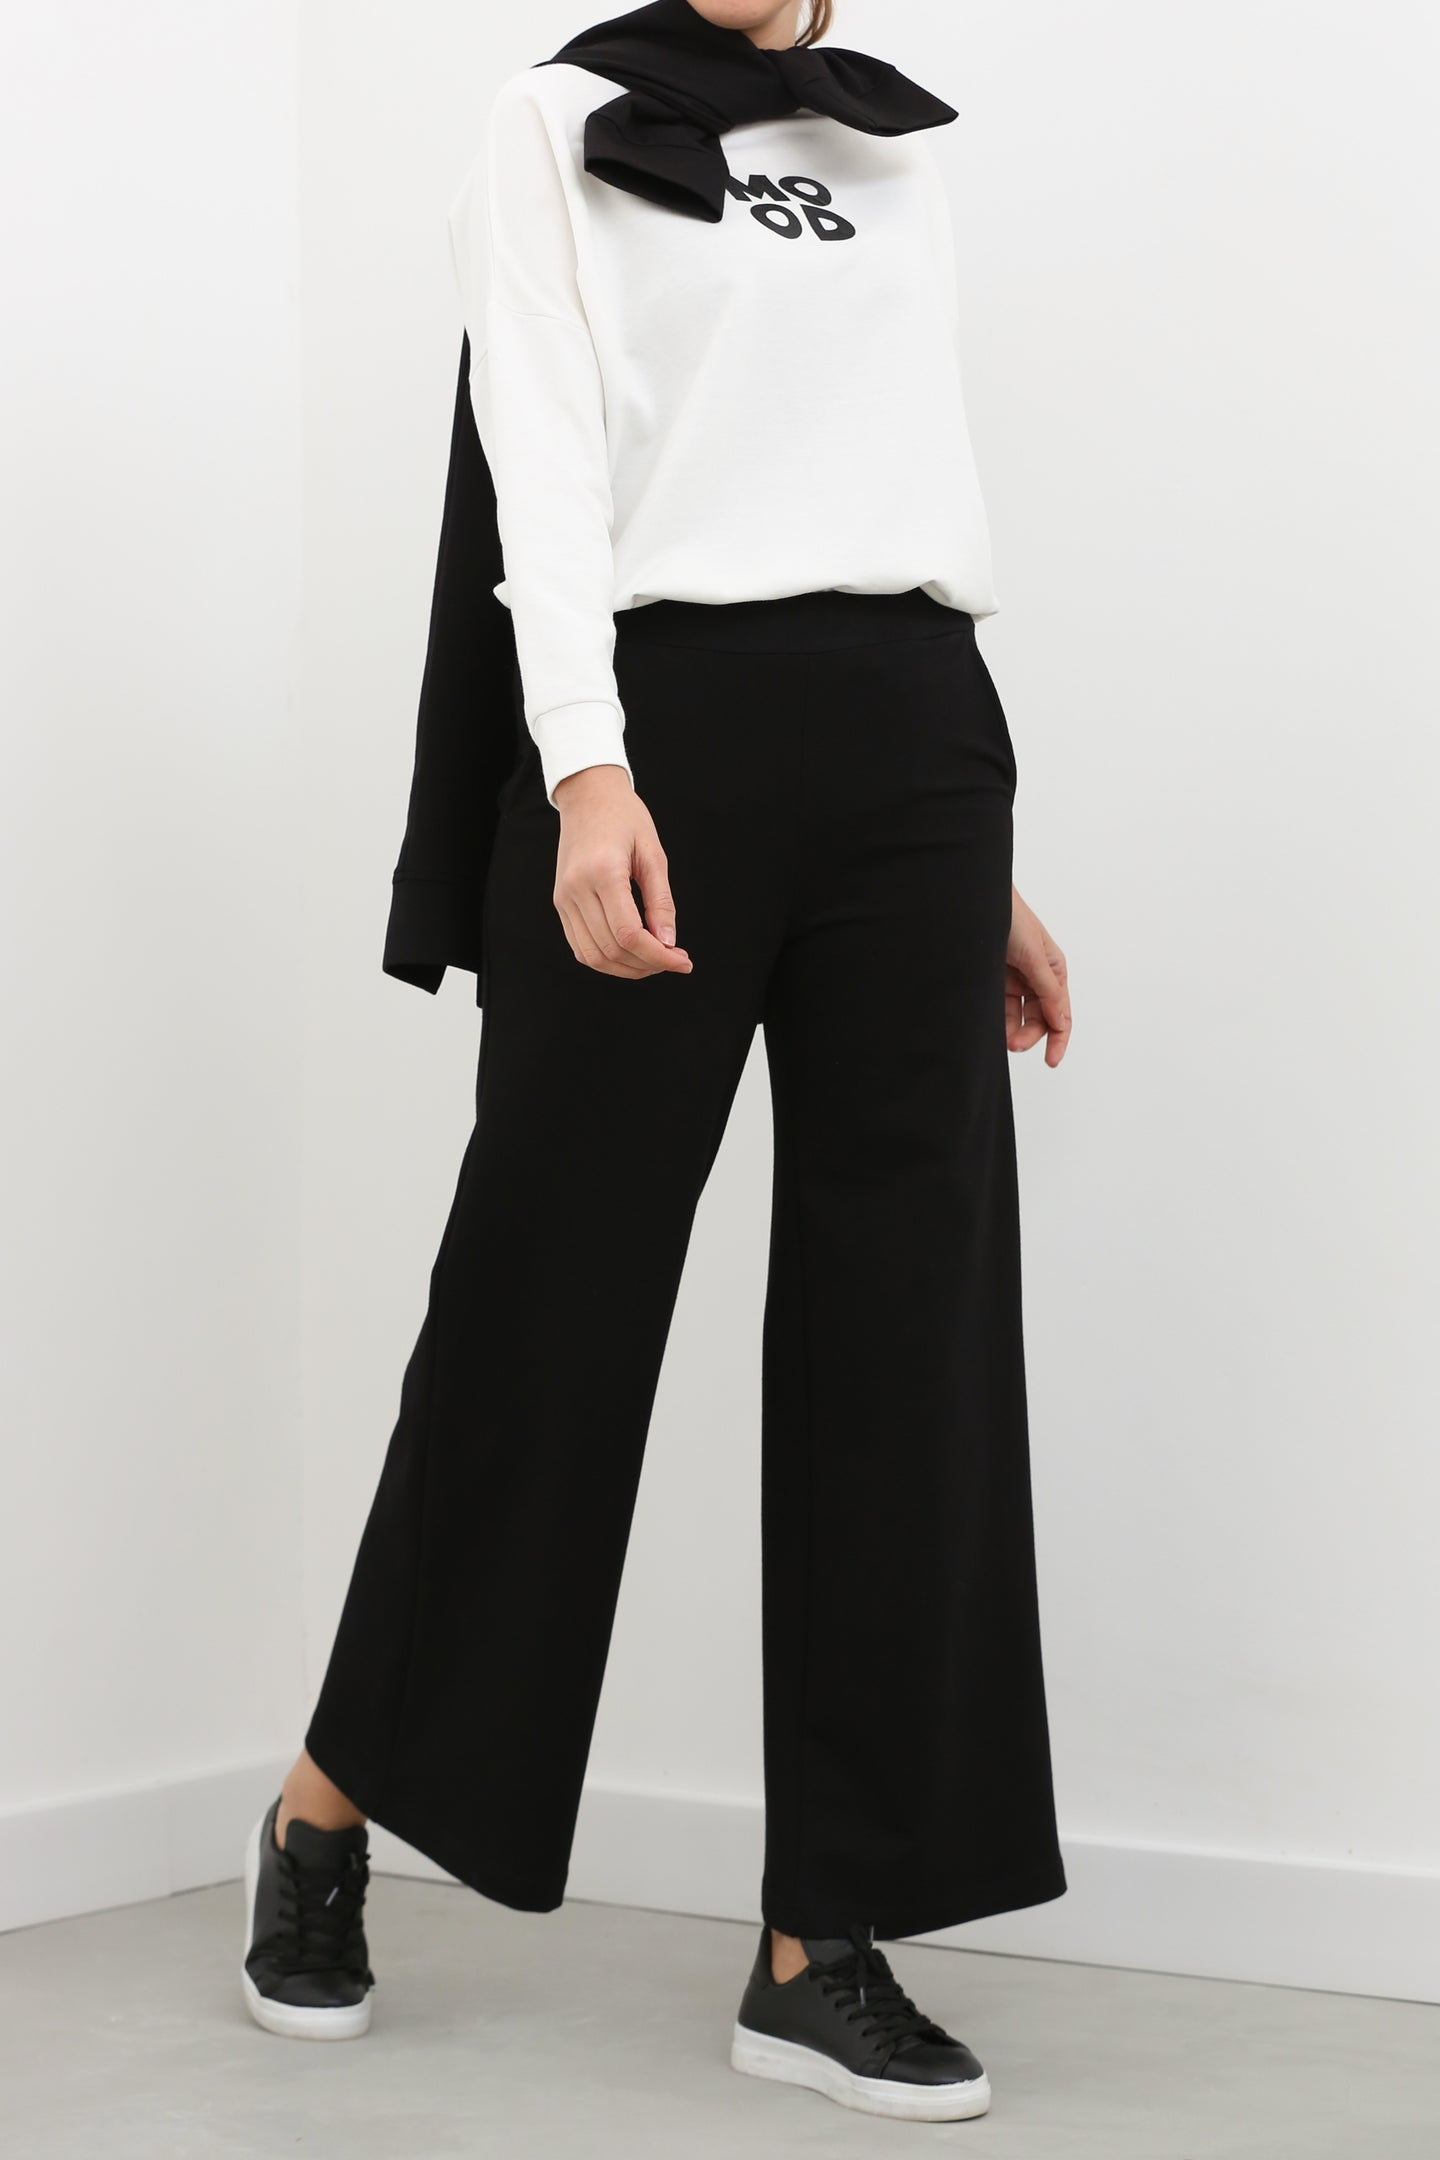 Women's Elastic Waist Black Wide Leg Sport Pants